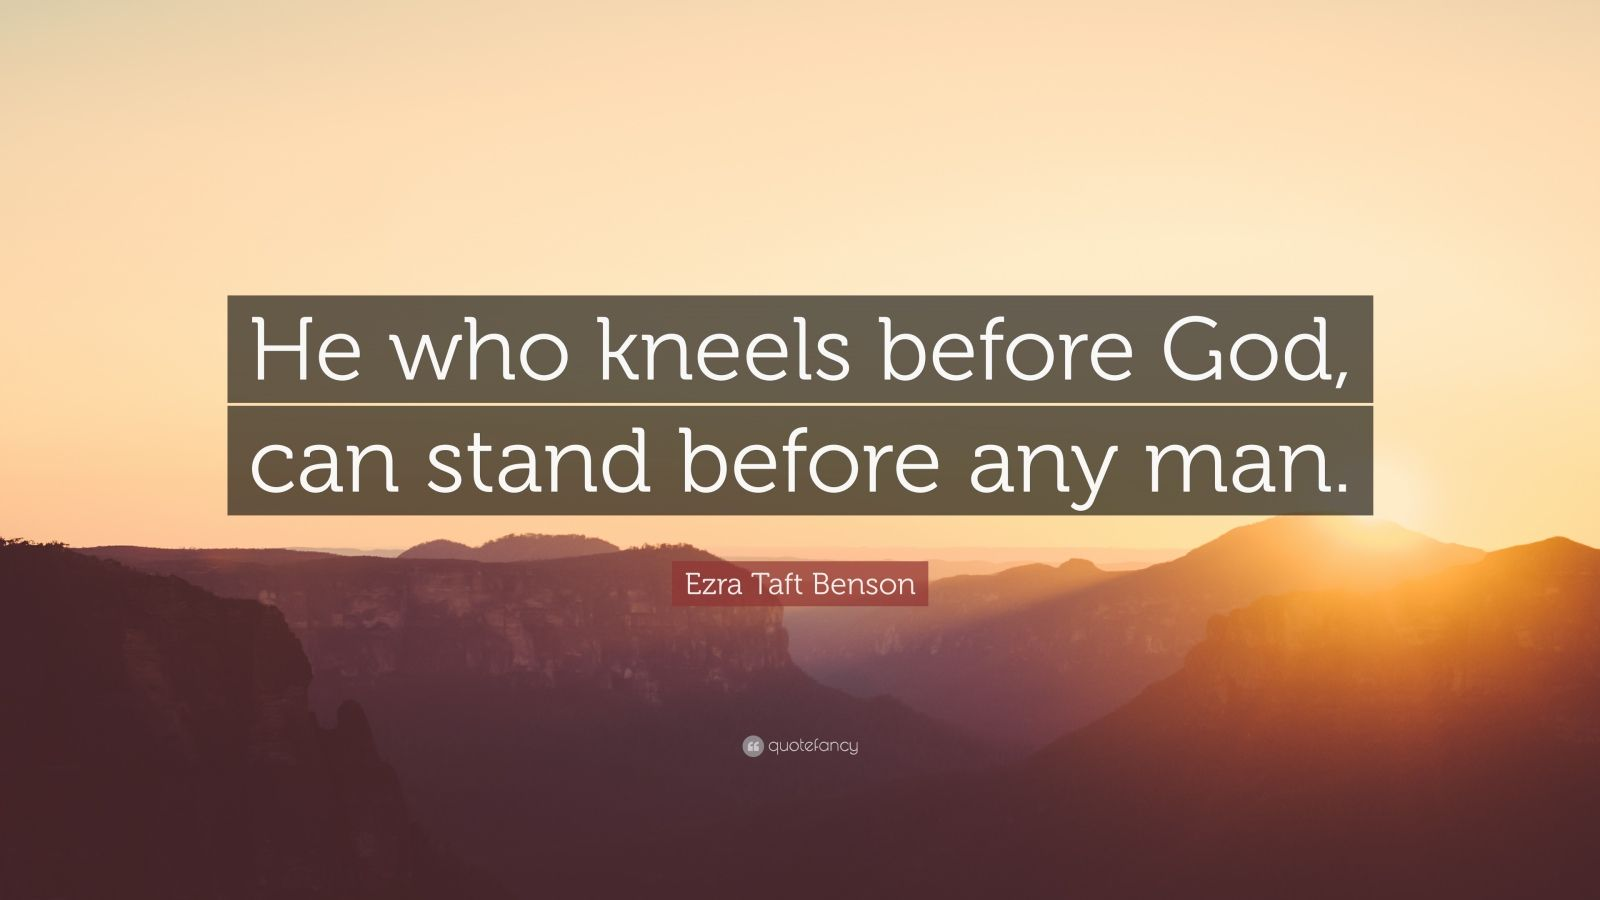 """Ezra Taft Benson Quote: """"He who kneels before God, can stand before any man."""""""